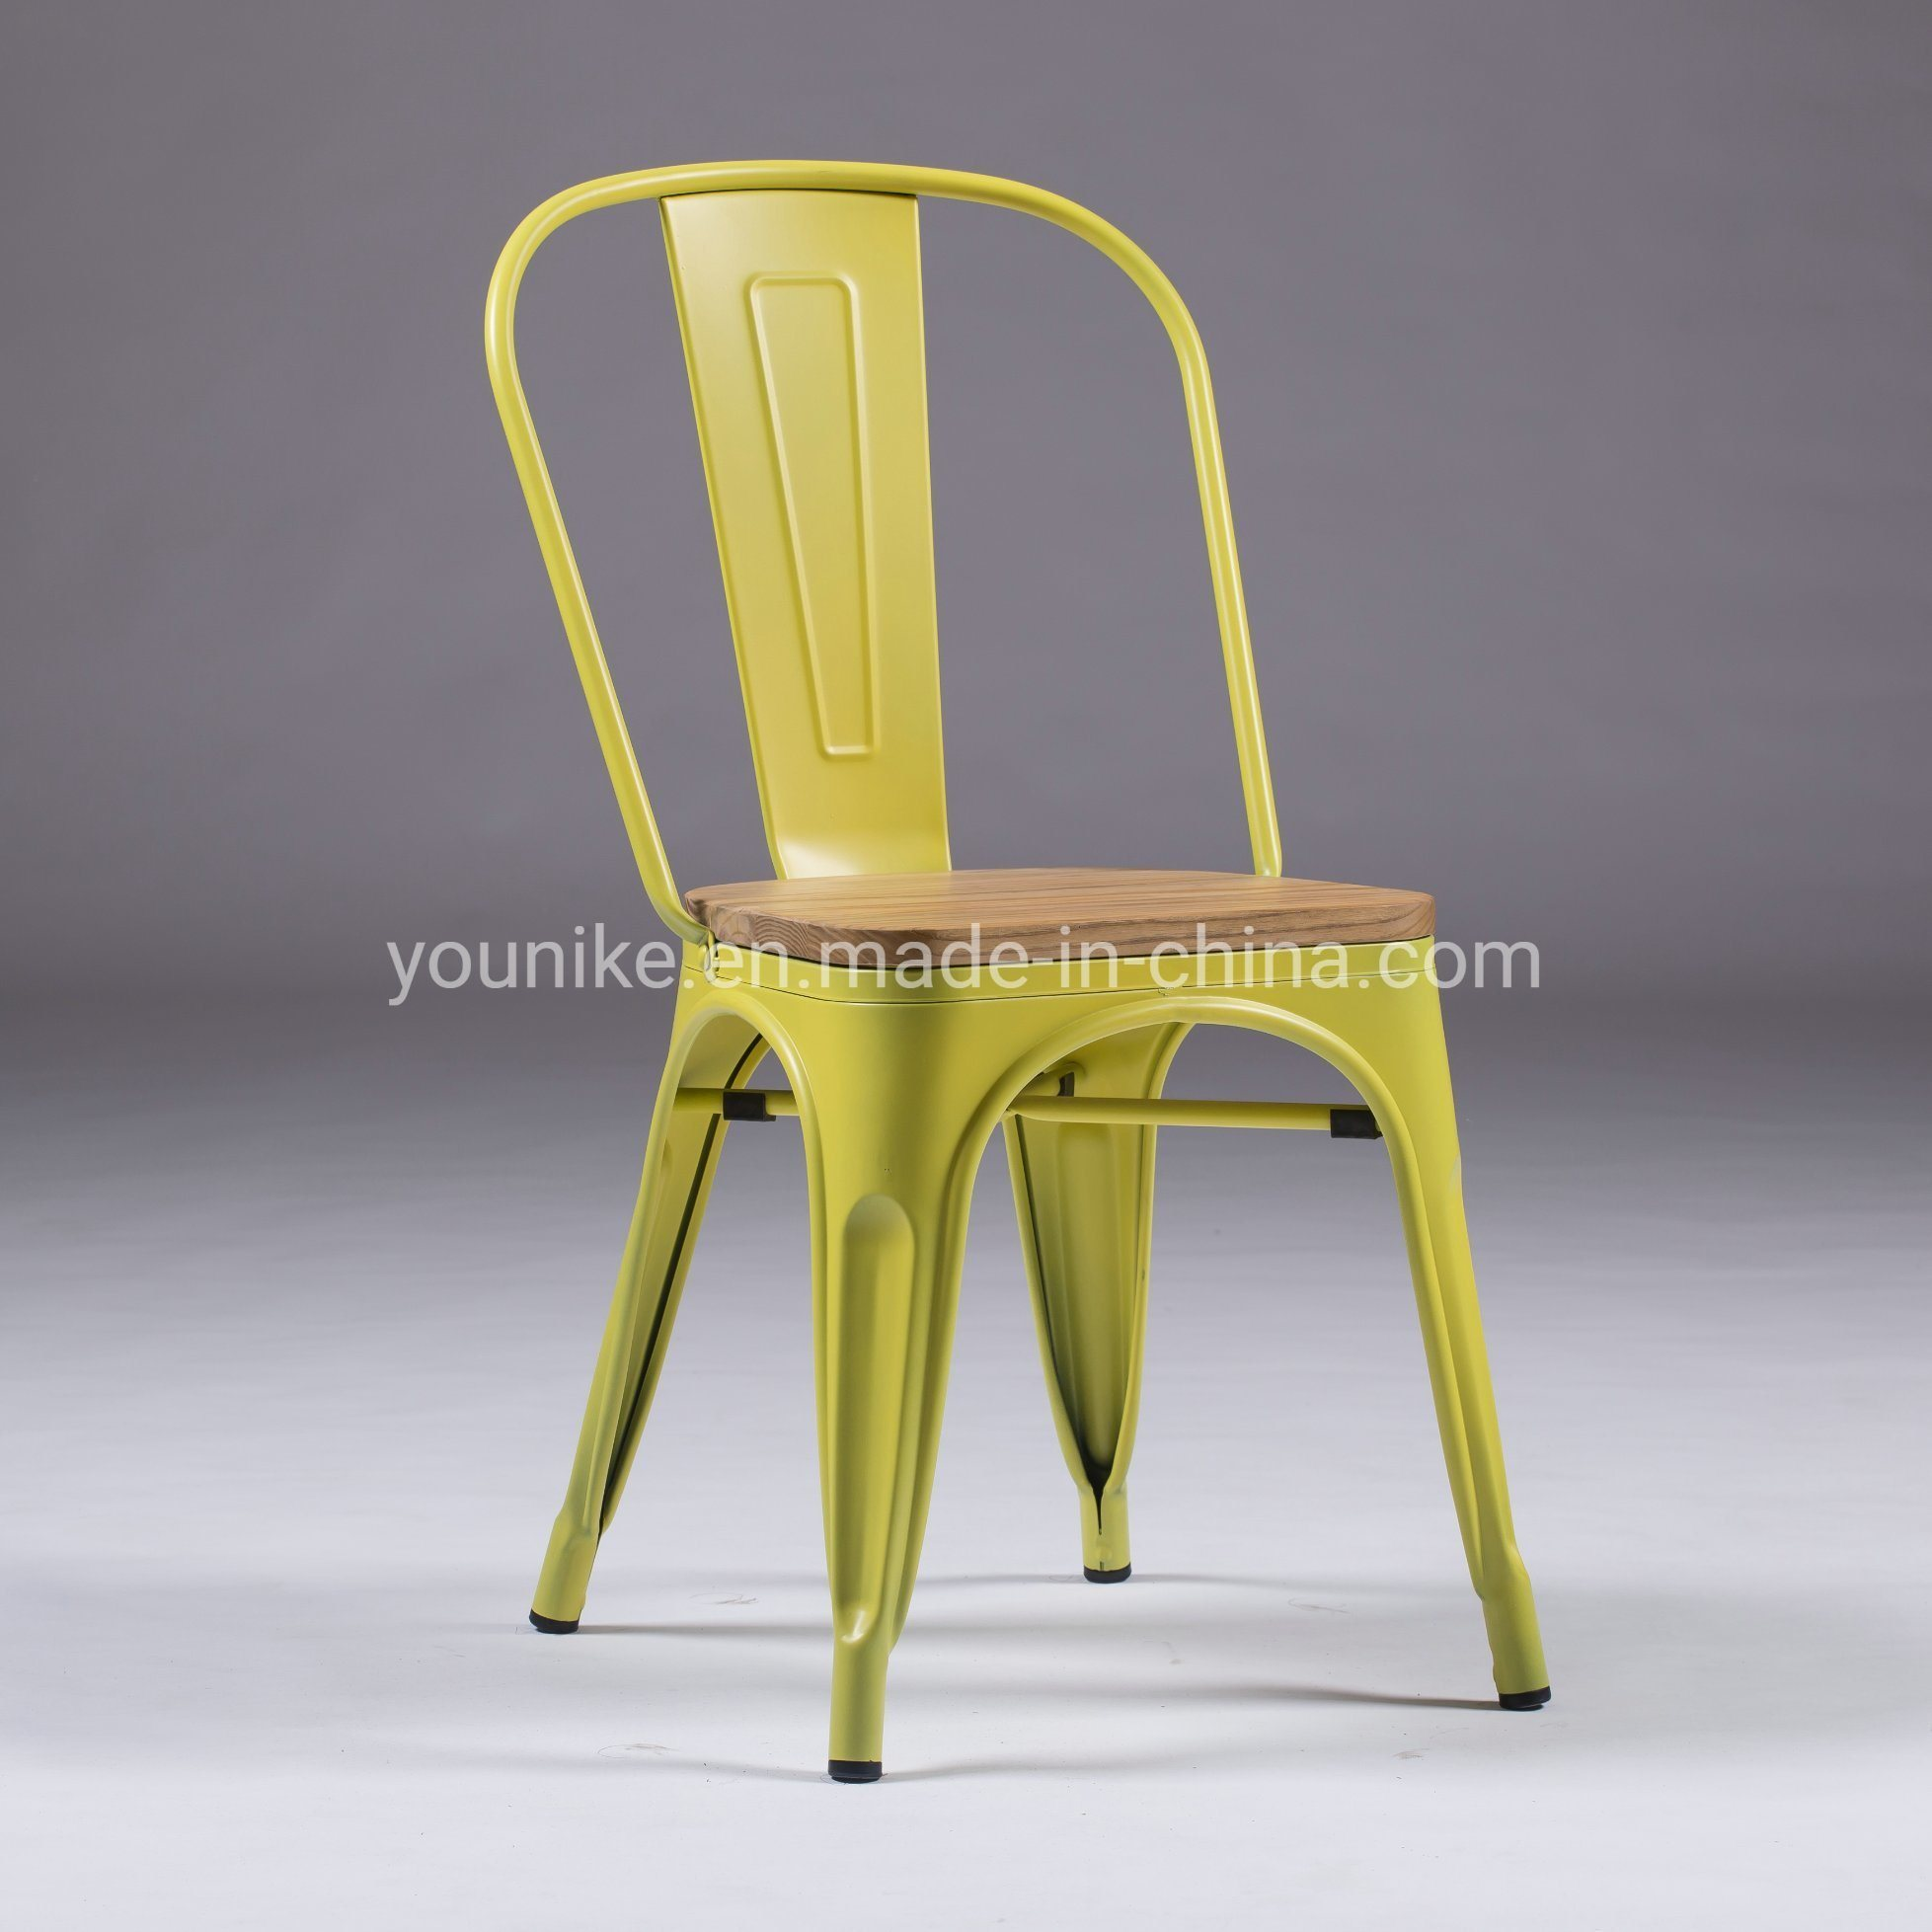 [Hot Item] Industrial Tolix Modern Metal Dining Chair with Wood Seat Yellow